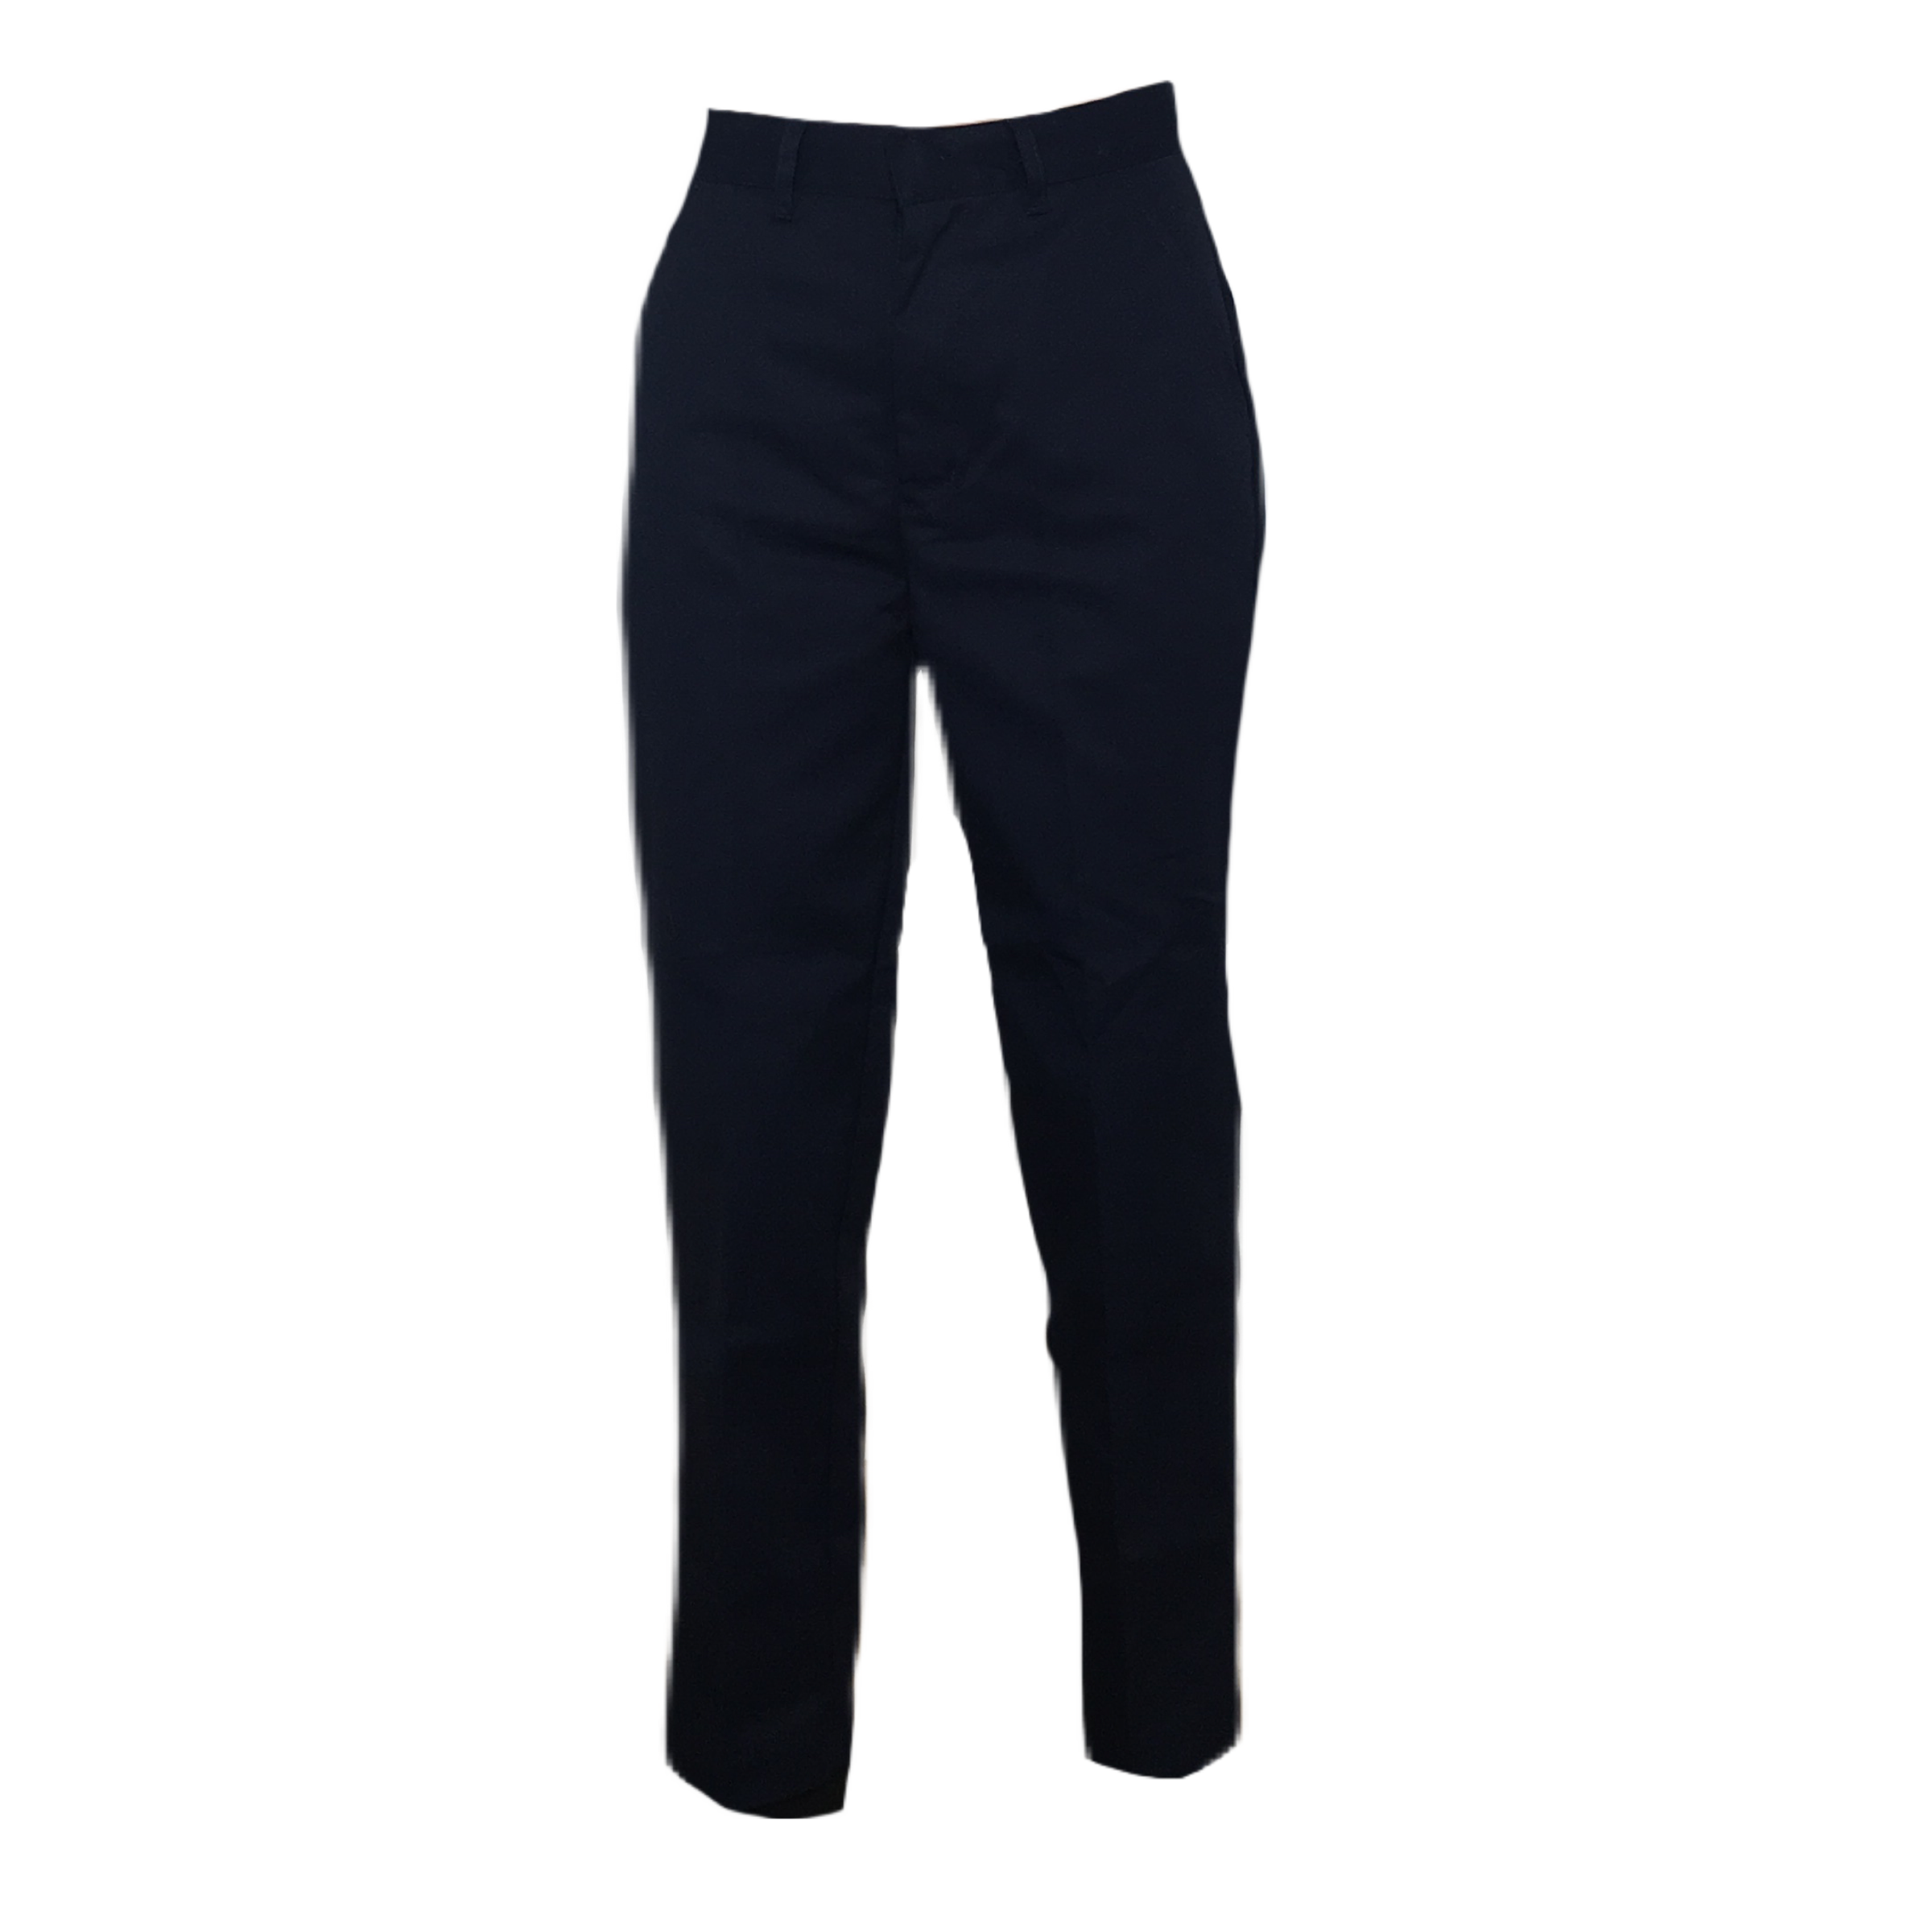 BOYS - VALUE LINE - Unisex Pant Flat Front